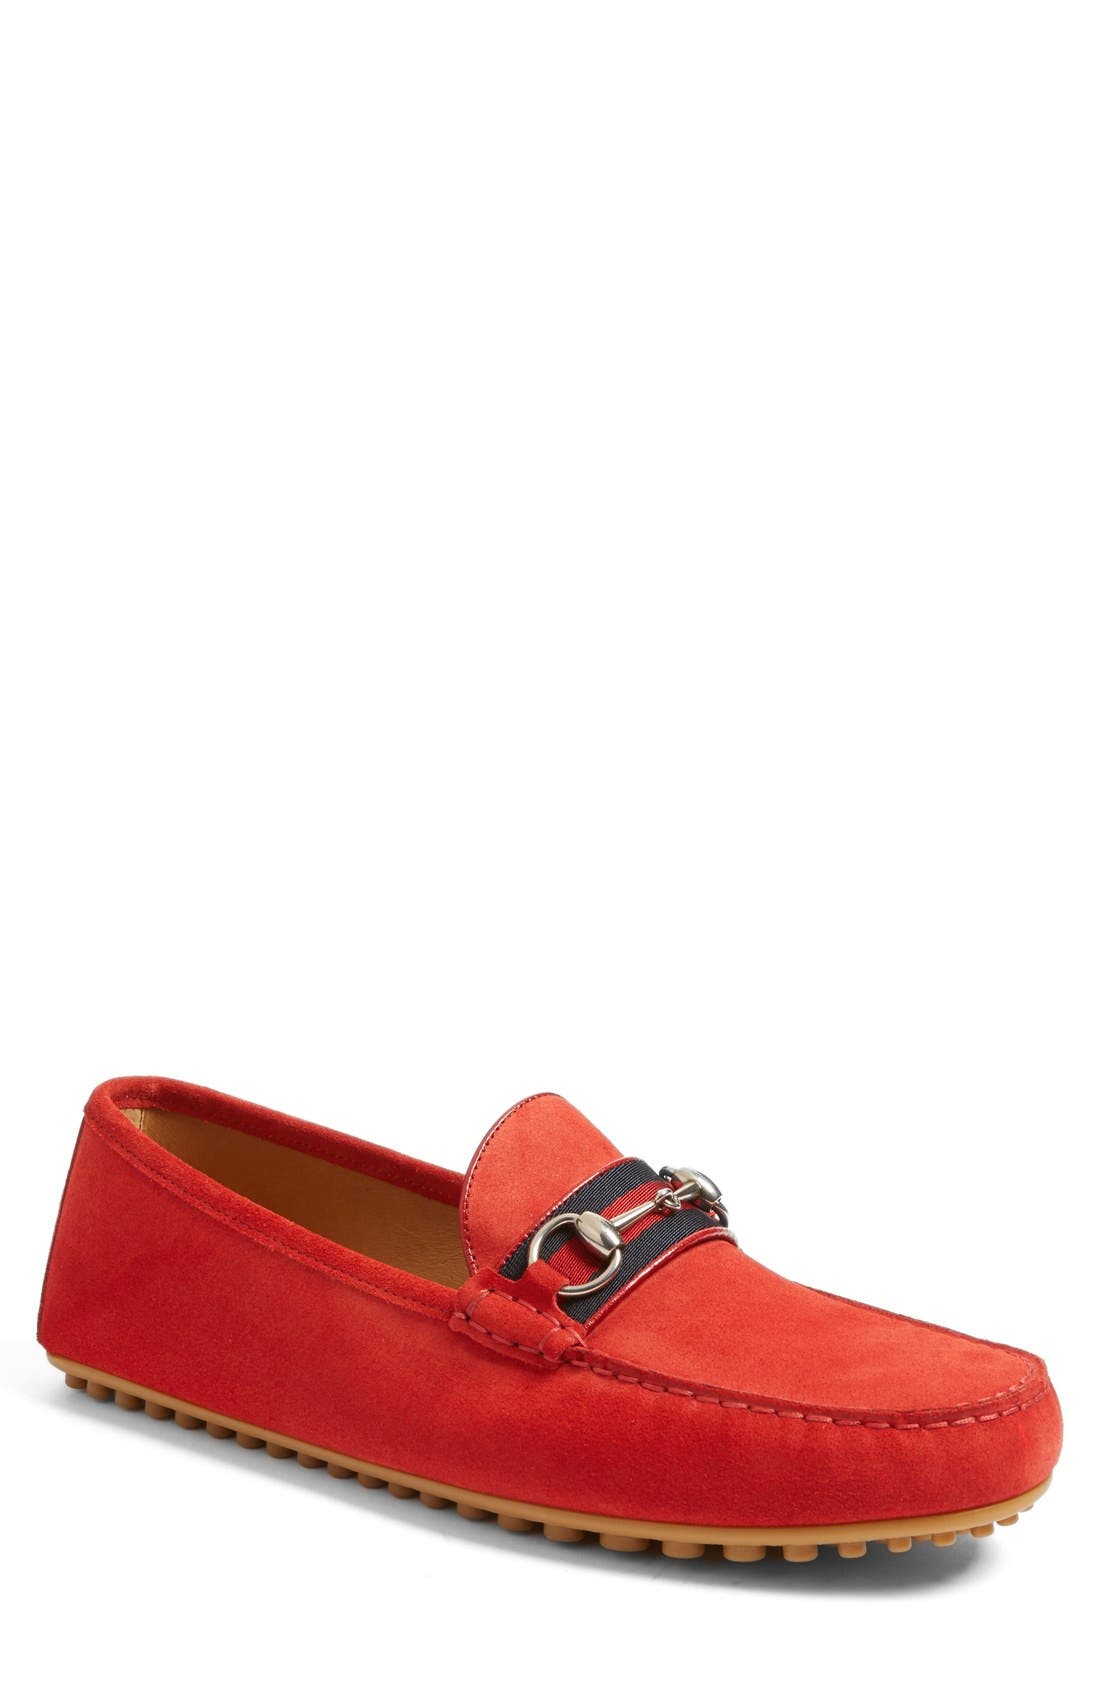 Alternate Image 1 Selected - Gucci Kanye Bit Loafer (Men)